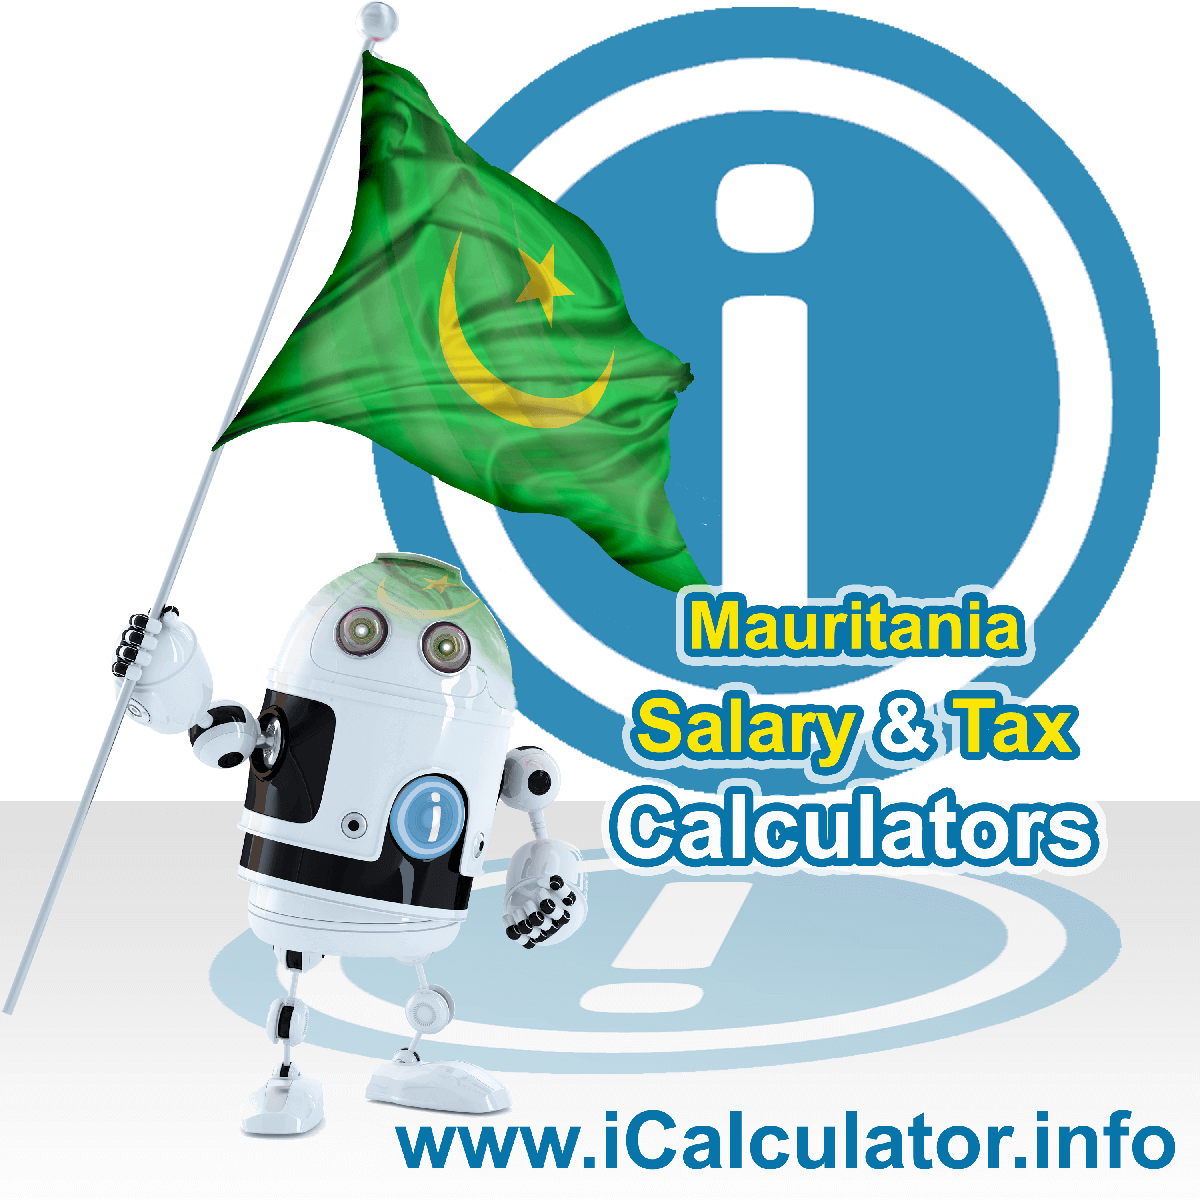 Mauritania Wage Calculator. This image shows the Mauritania flag and information relating to the tax formula for the Mauritania Tax Calculator